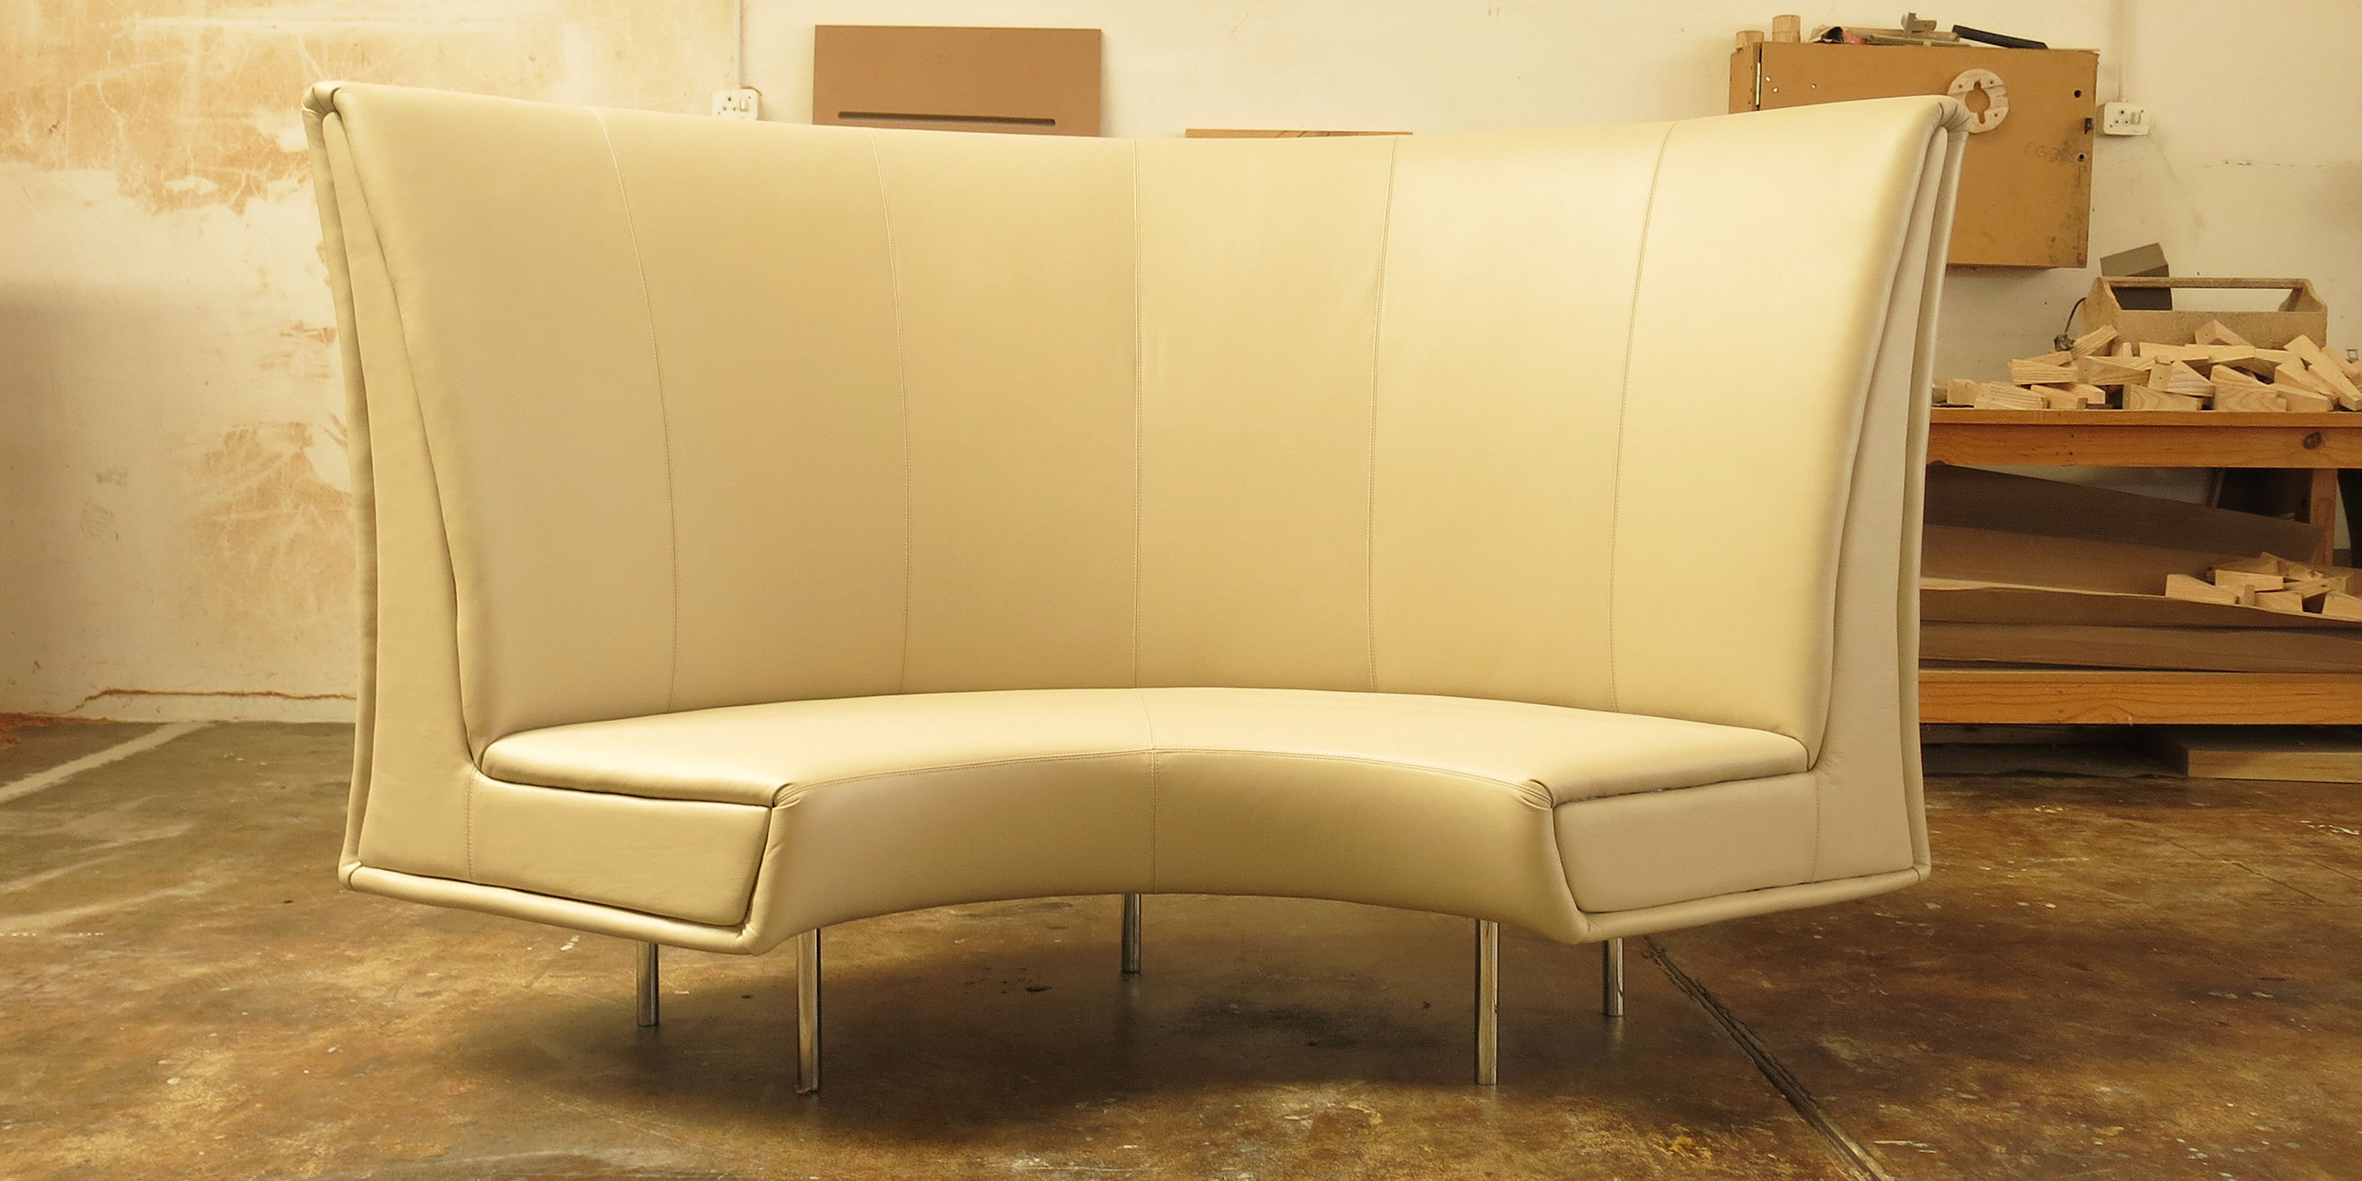 lilly sofa, 1400 l x 630 w x 1300 h, natural leather upholstery